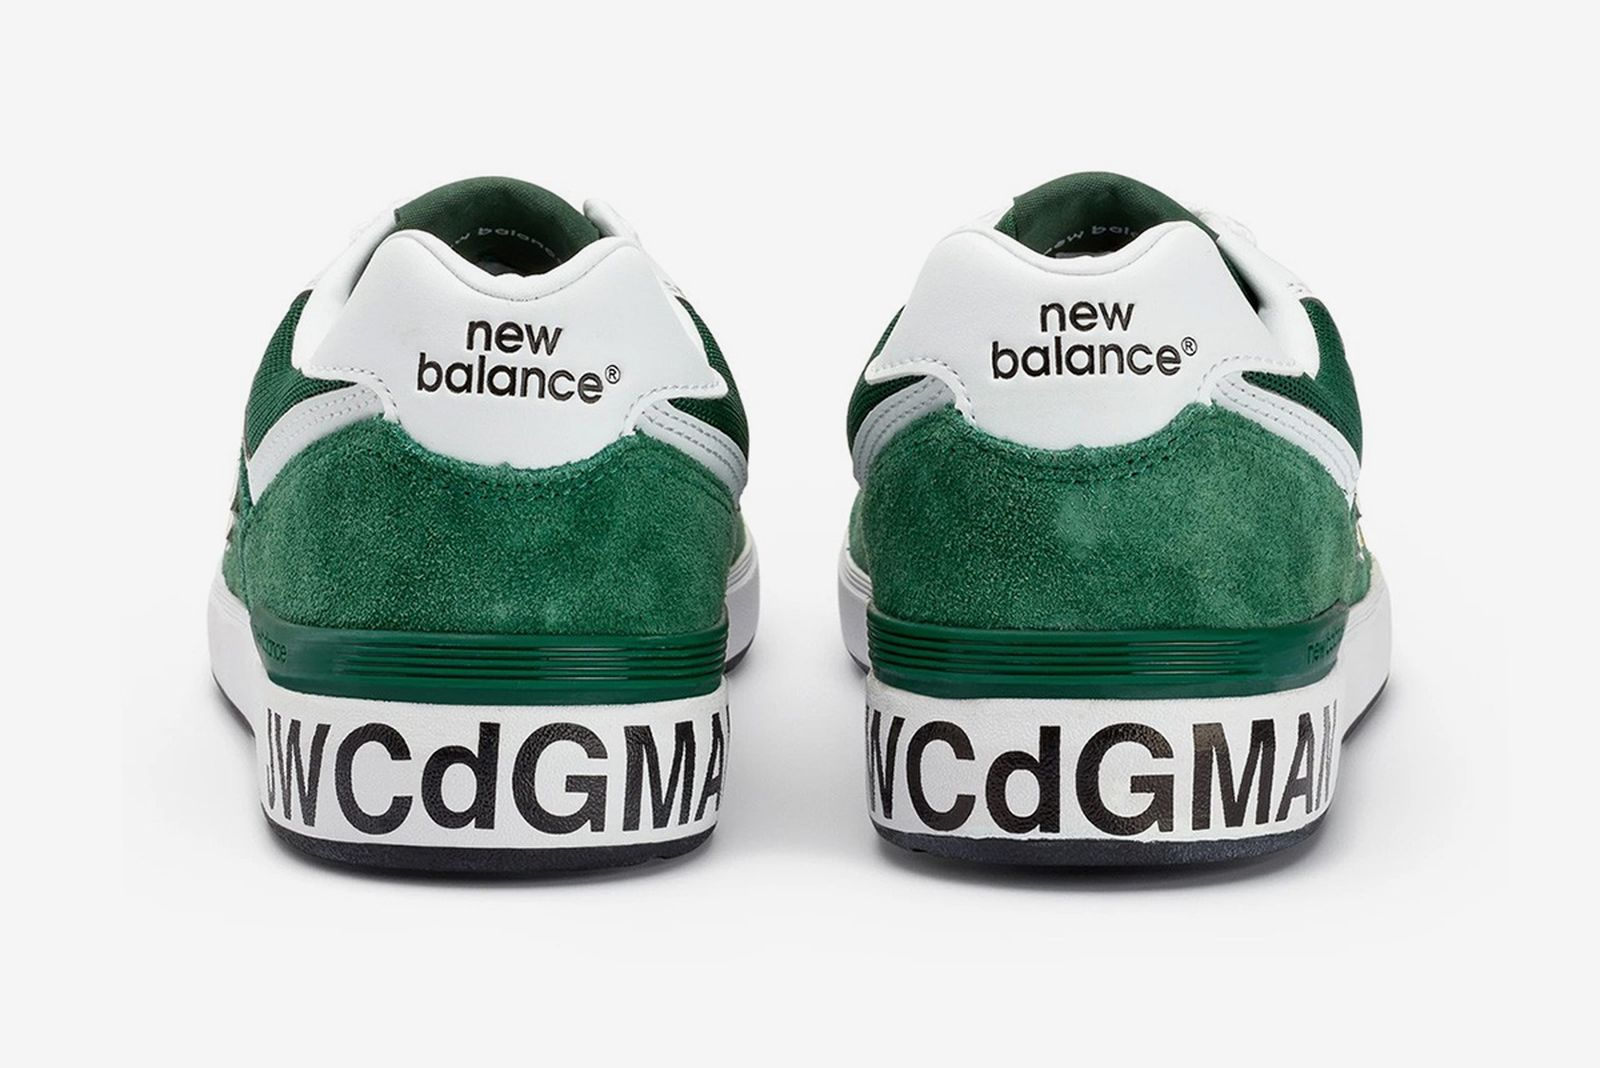 daily-sneaker-news-03-30-2021-2-03